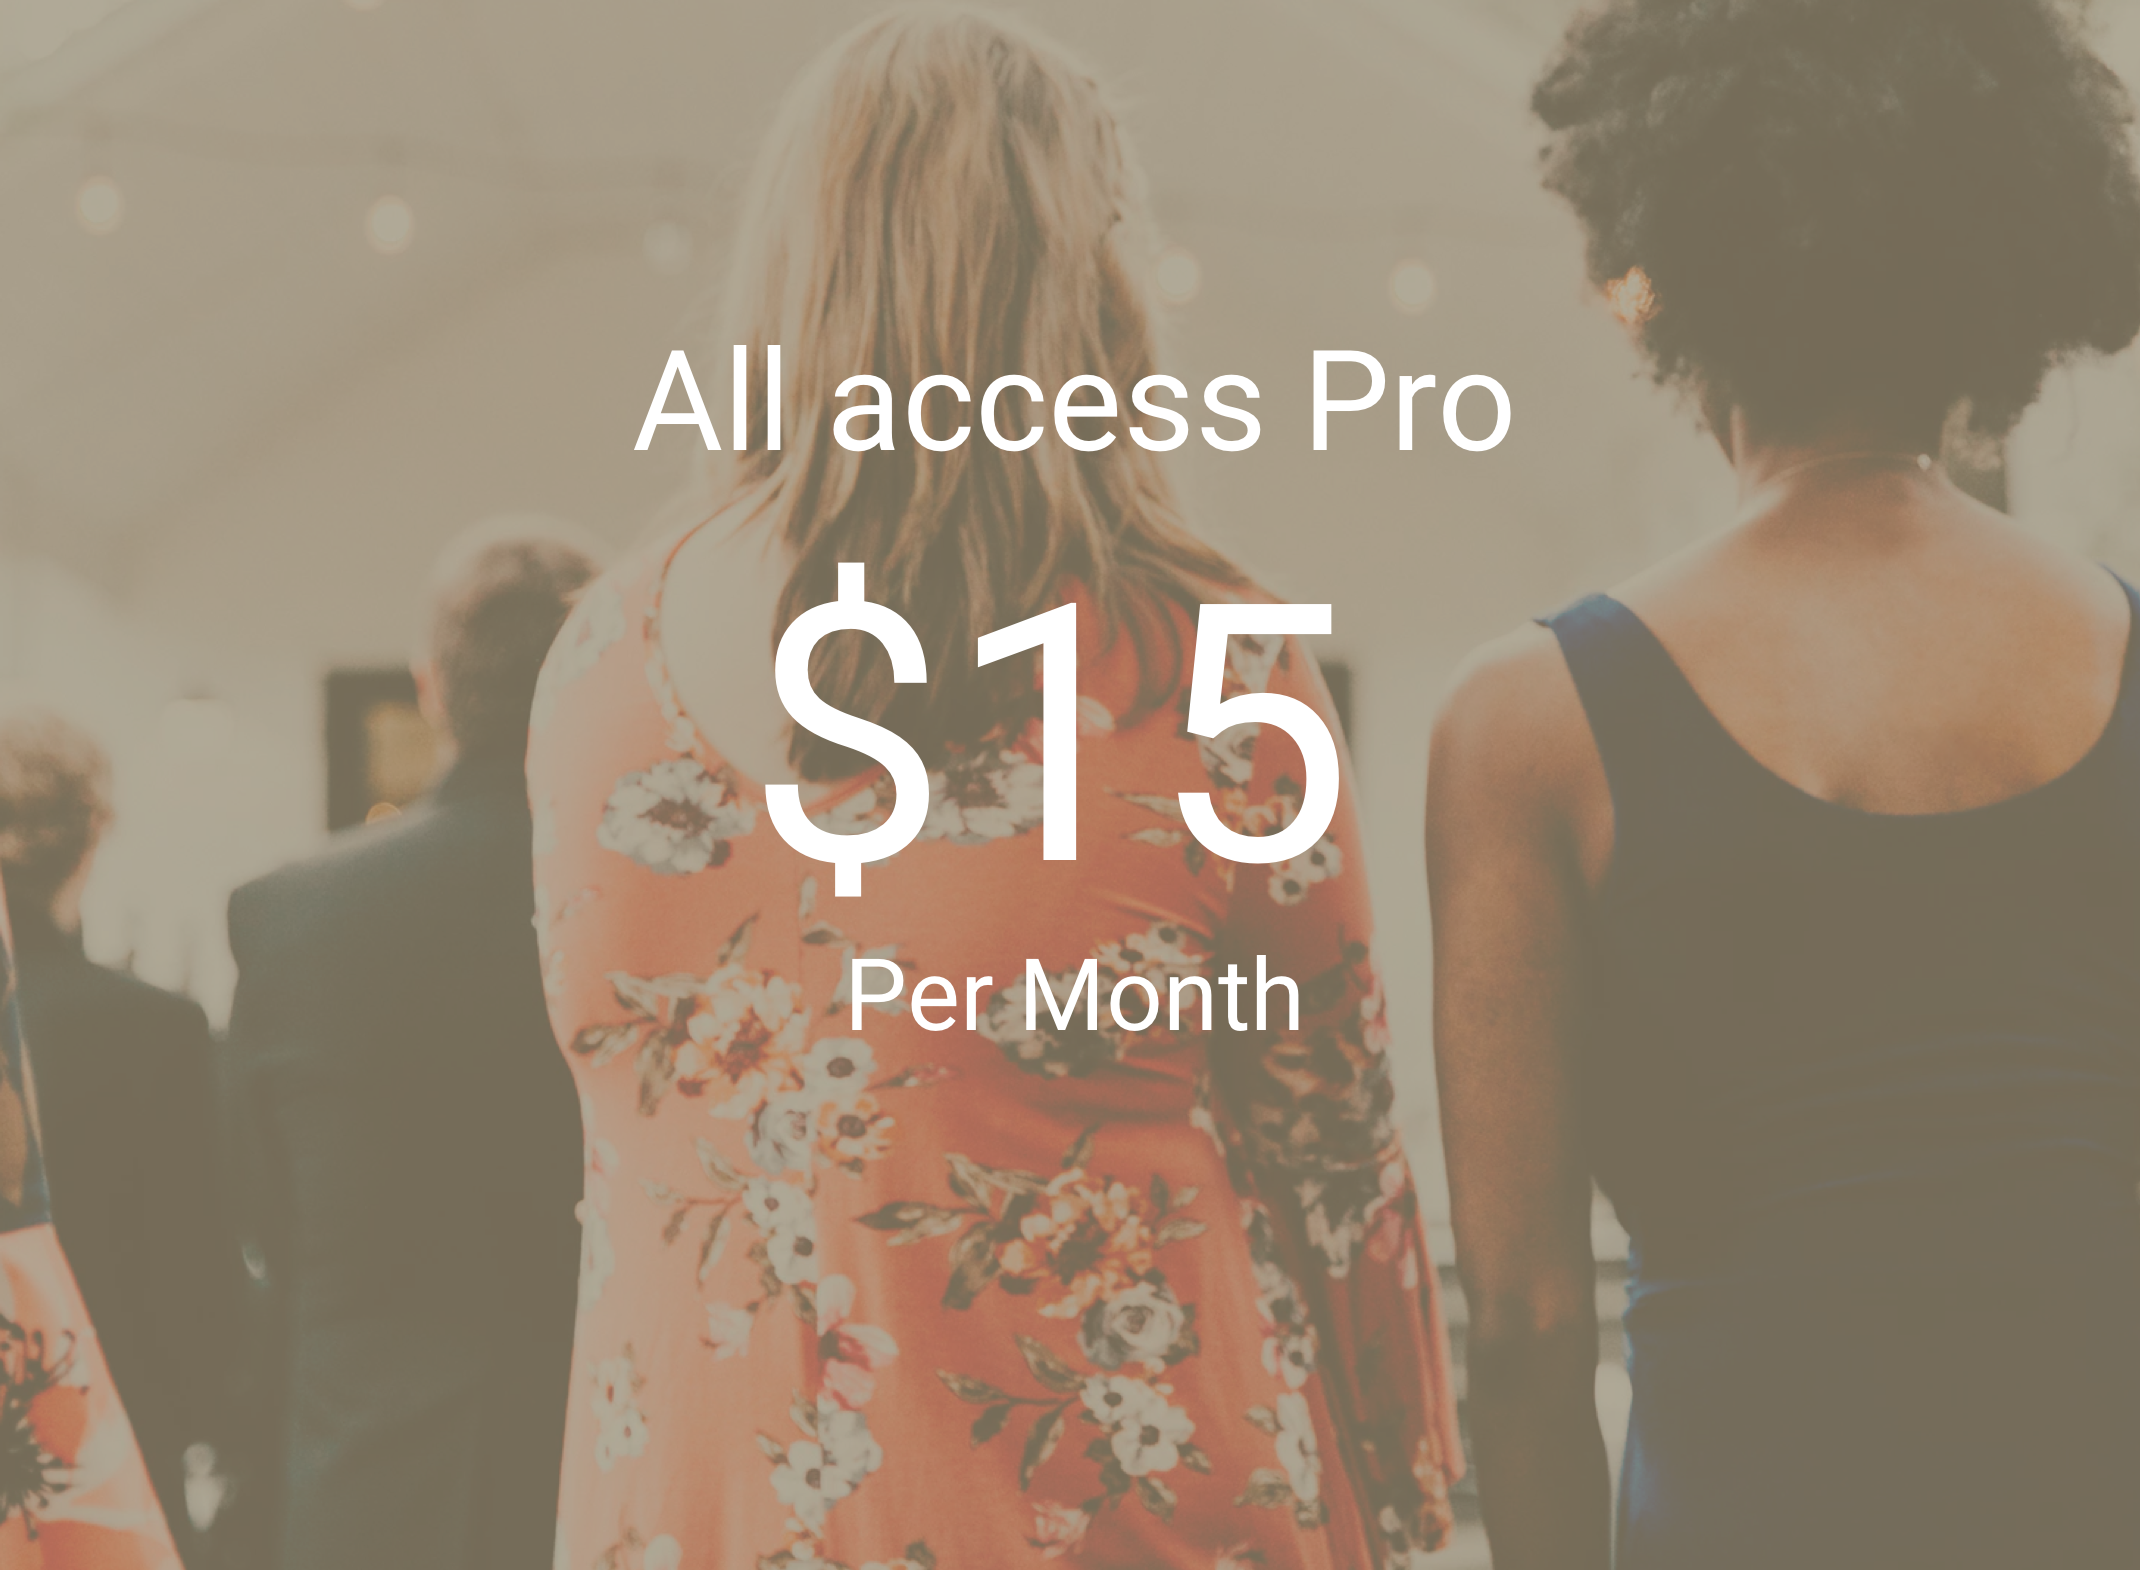 All access pro.png